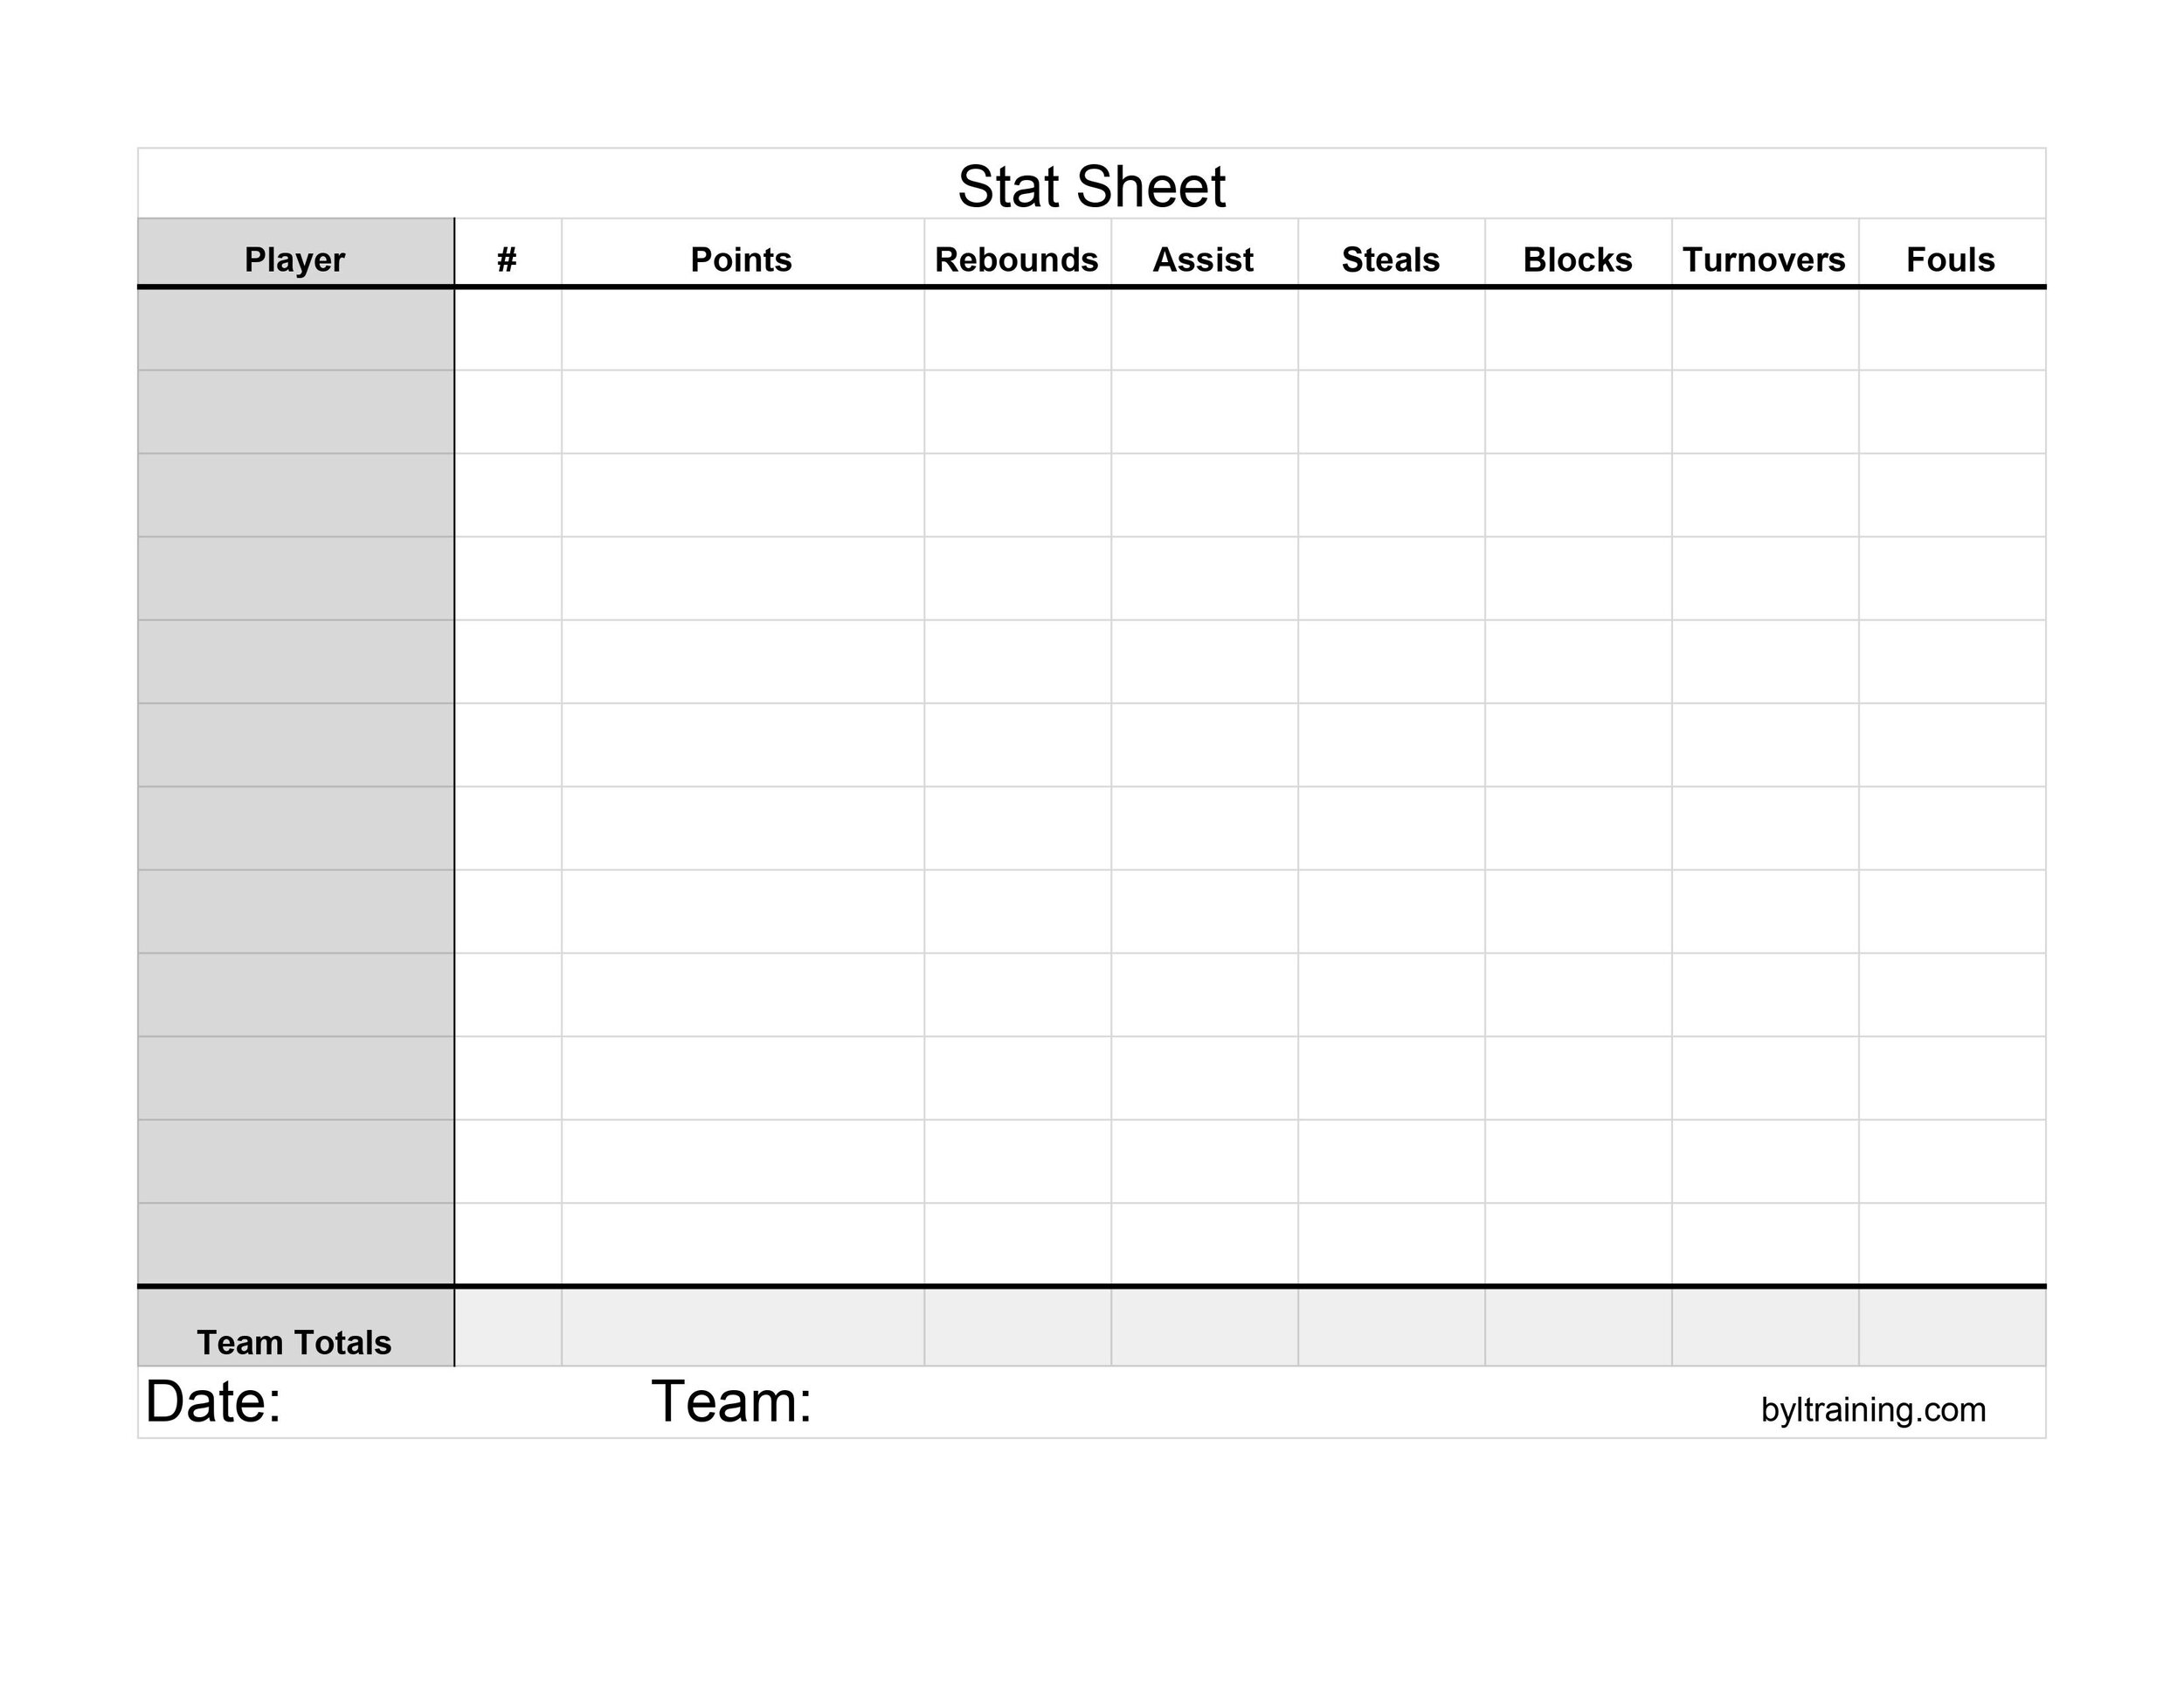 Free Printable Stat Sheets Statistics Definitions Beyond Your Limits Basketball